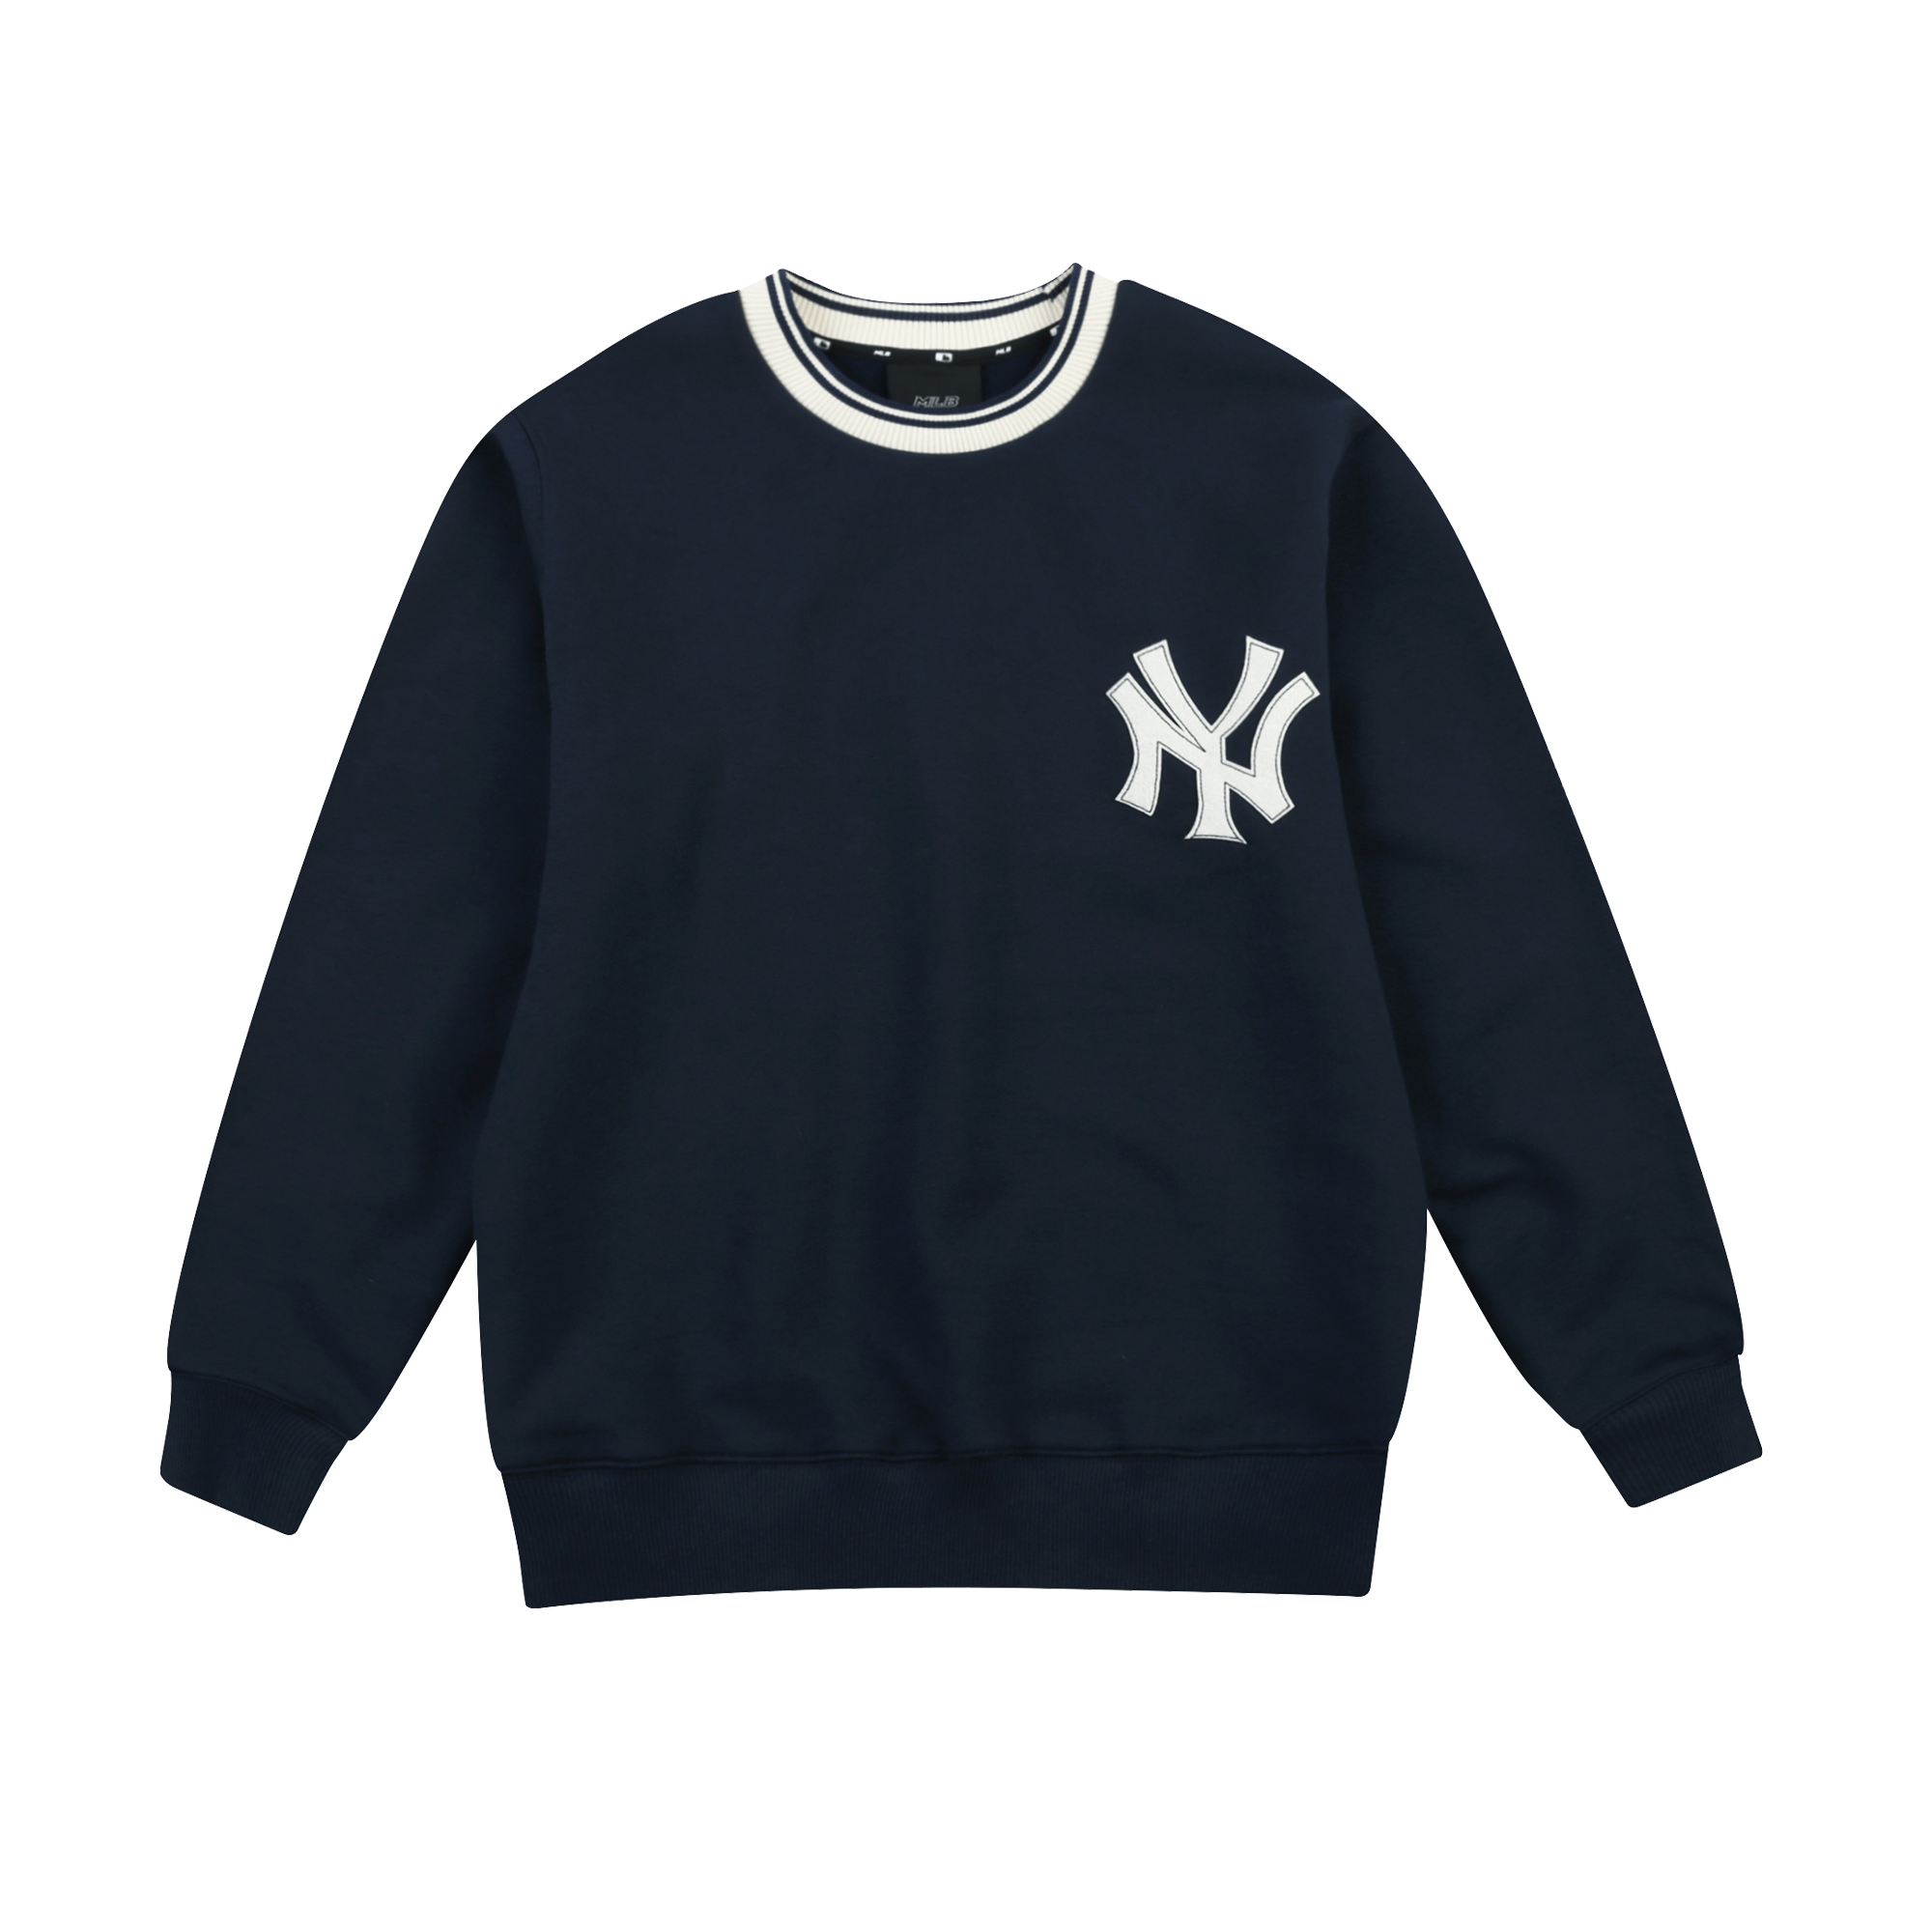 NEW YORK YANKEES BIG LOGO NECKLINE POINT SWEATSHIRT